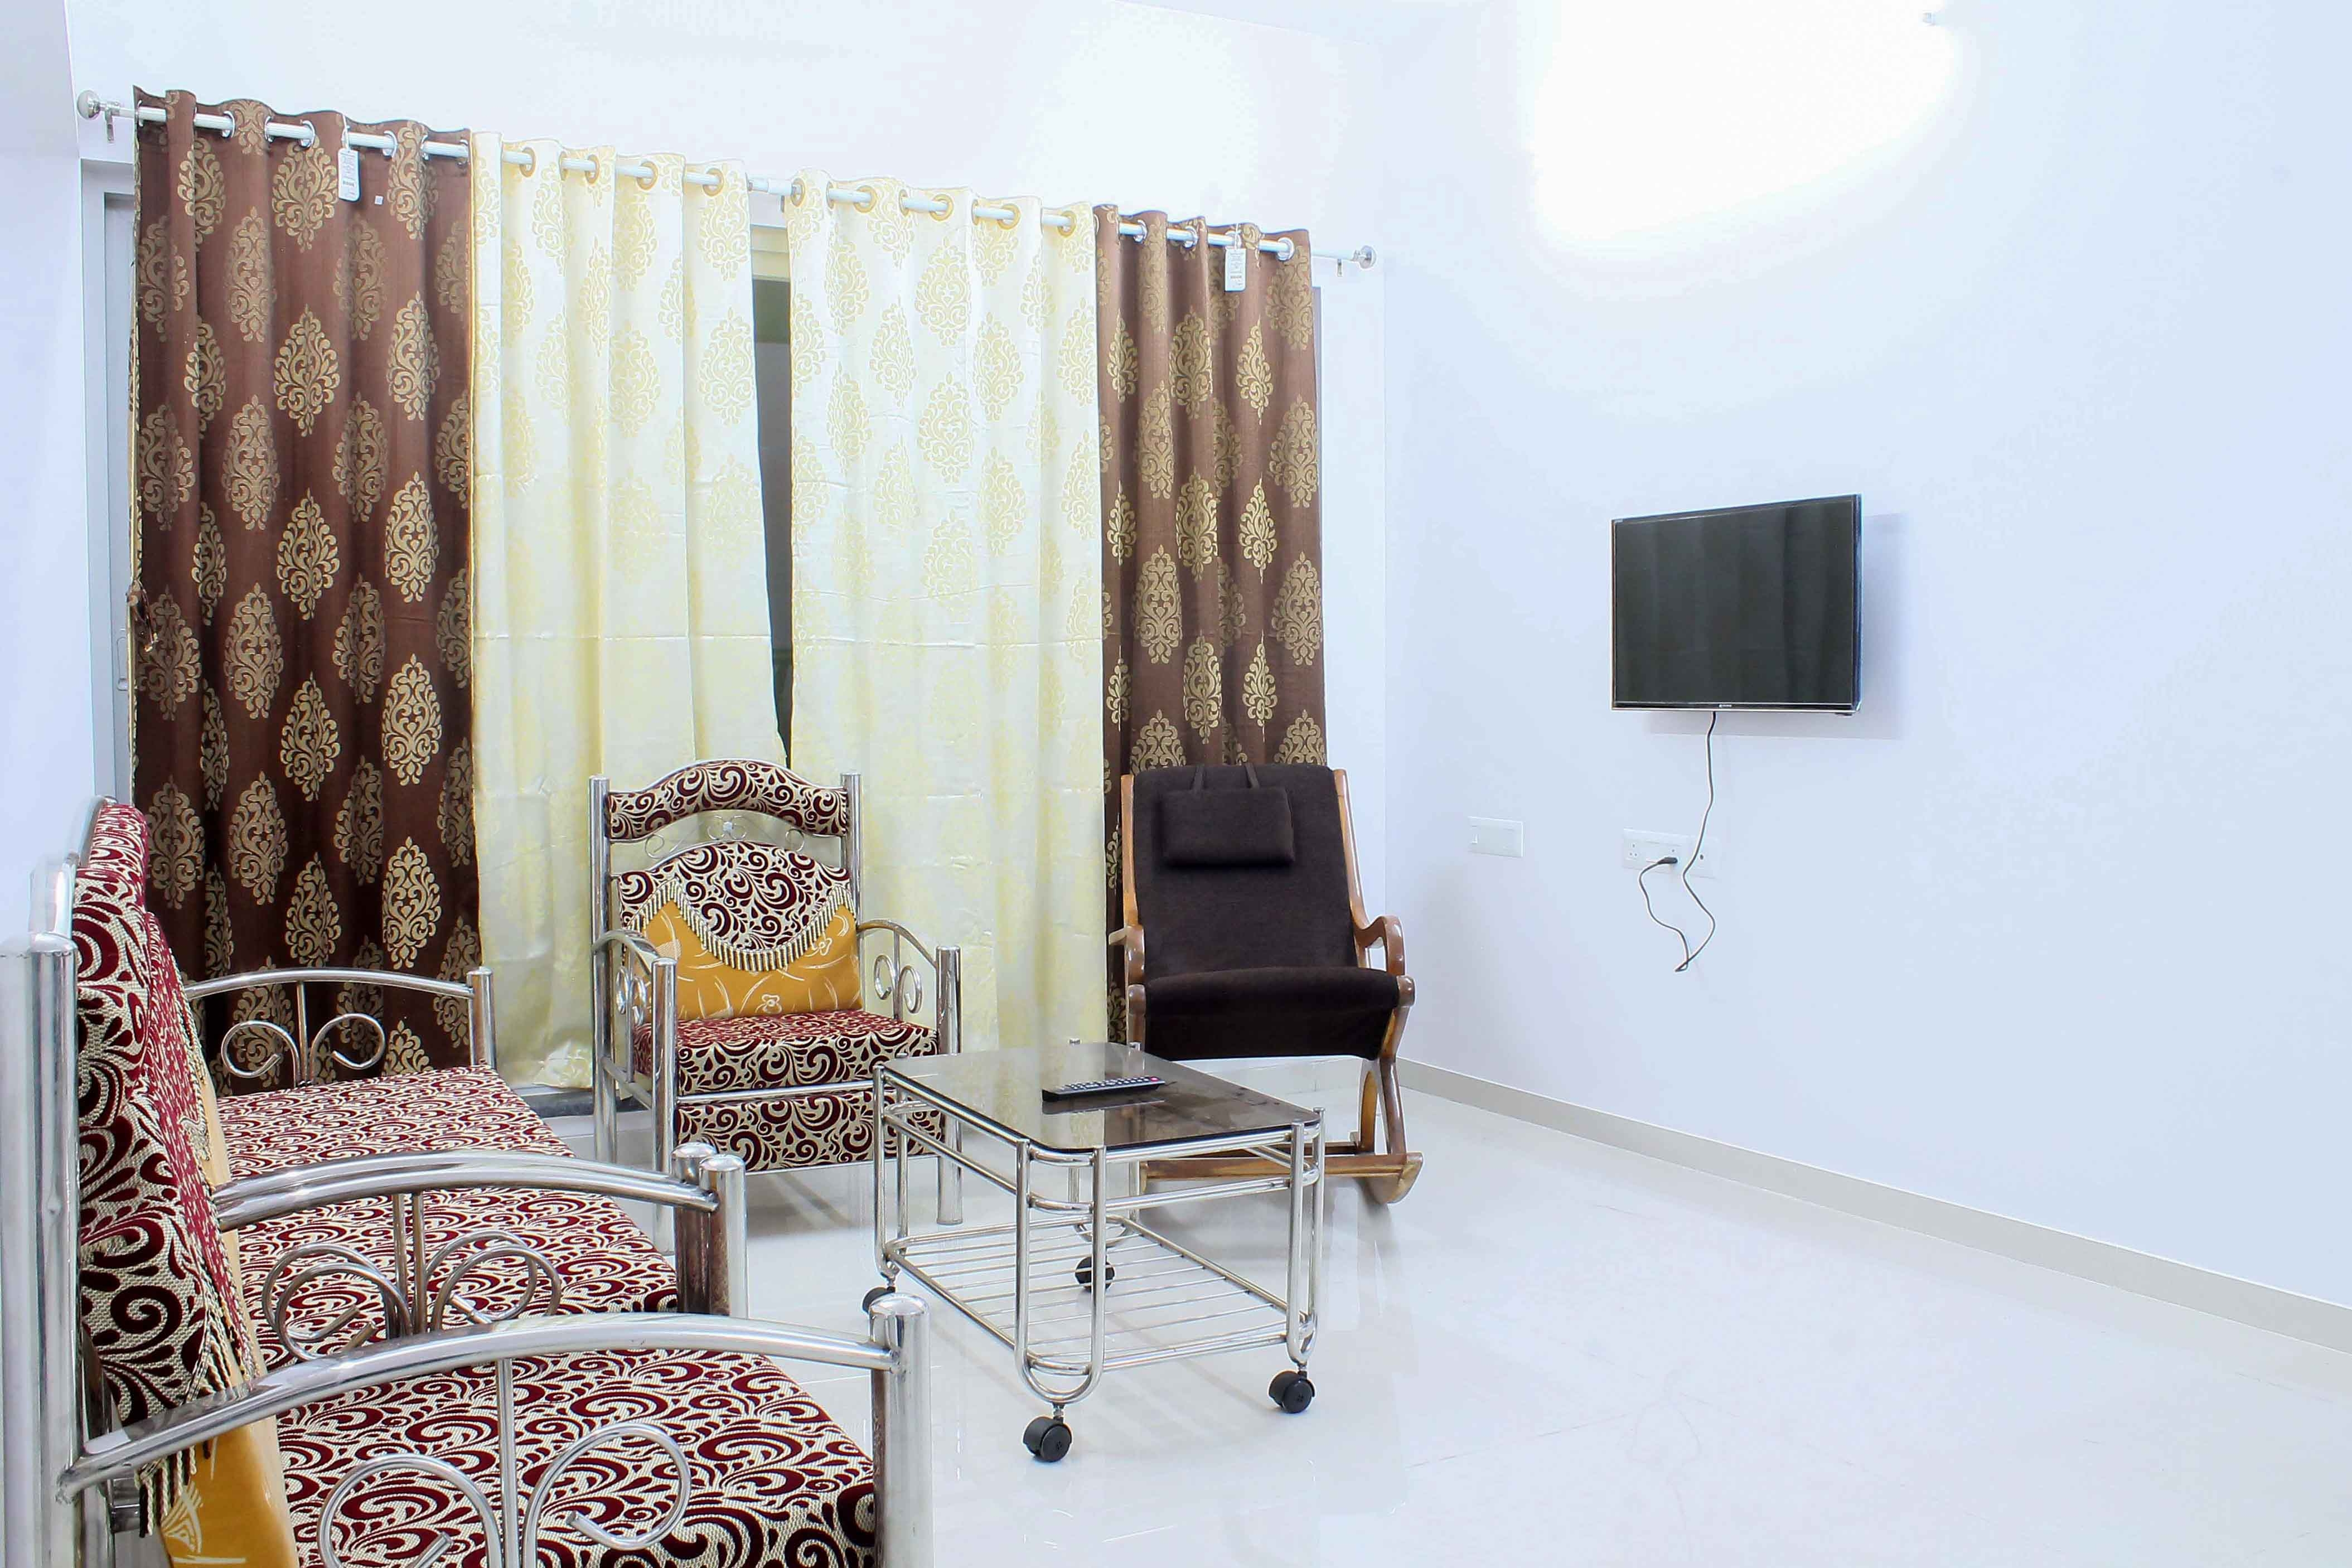 3 BHK Sharing Rooms for Women at ?8650 in Majiwada, Thane